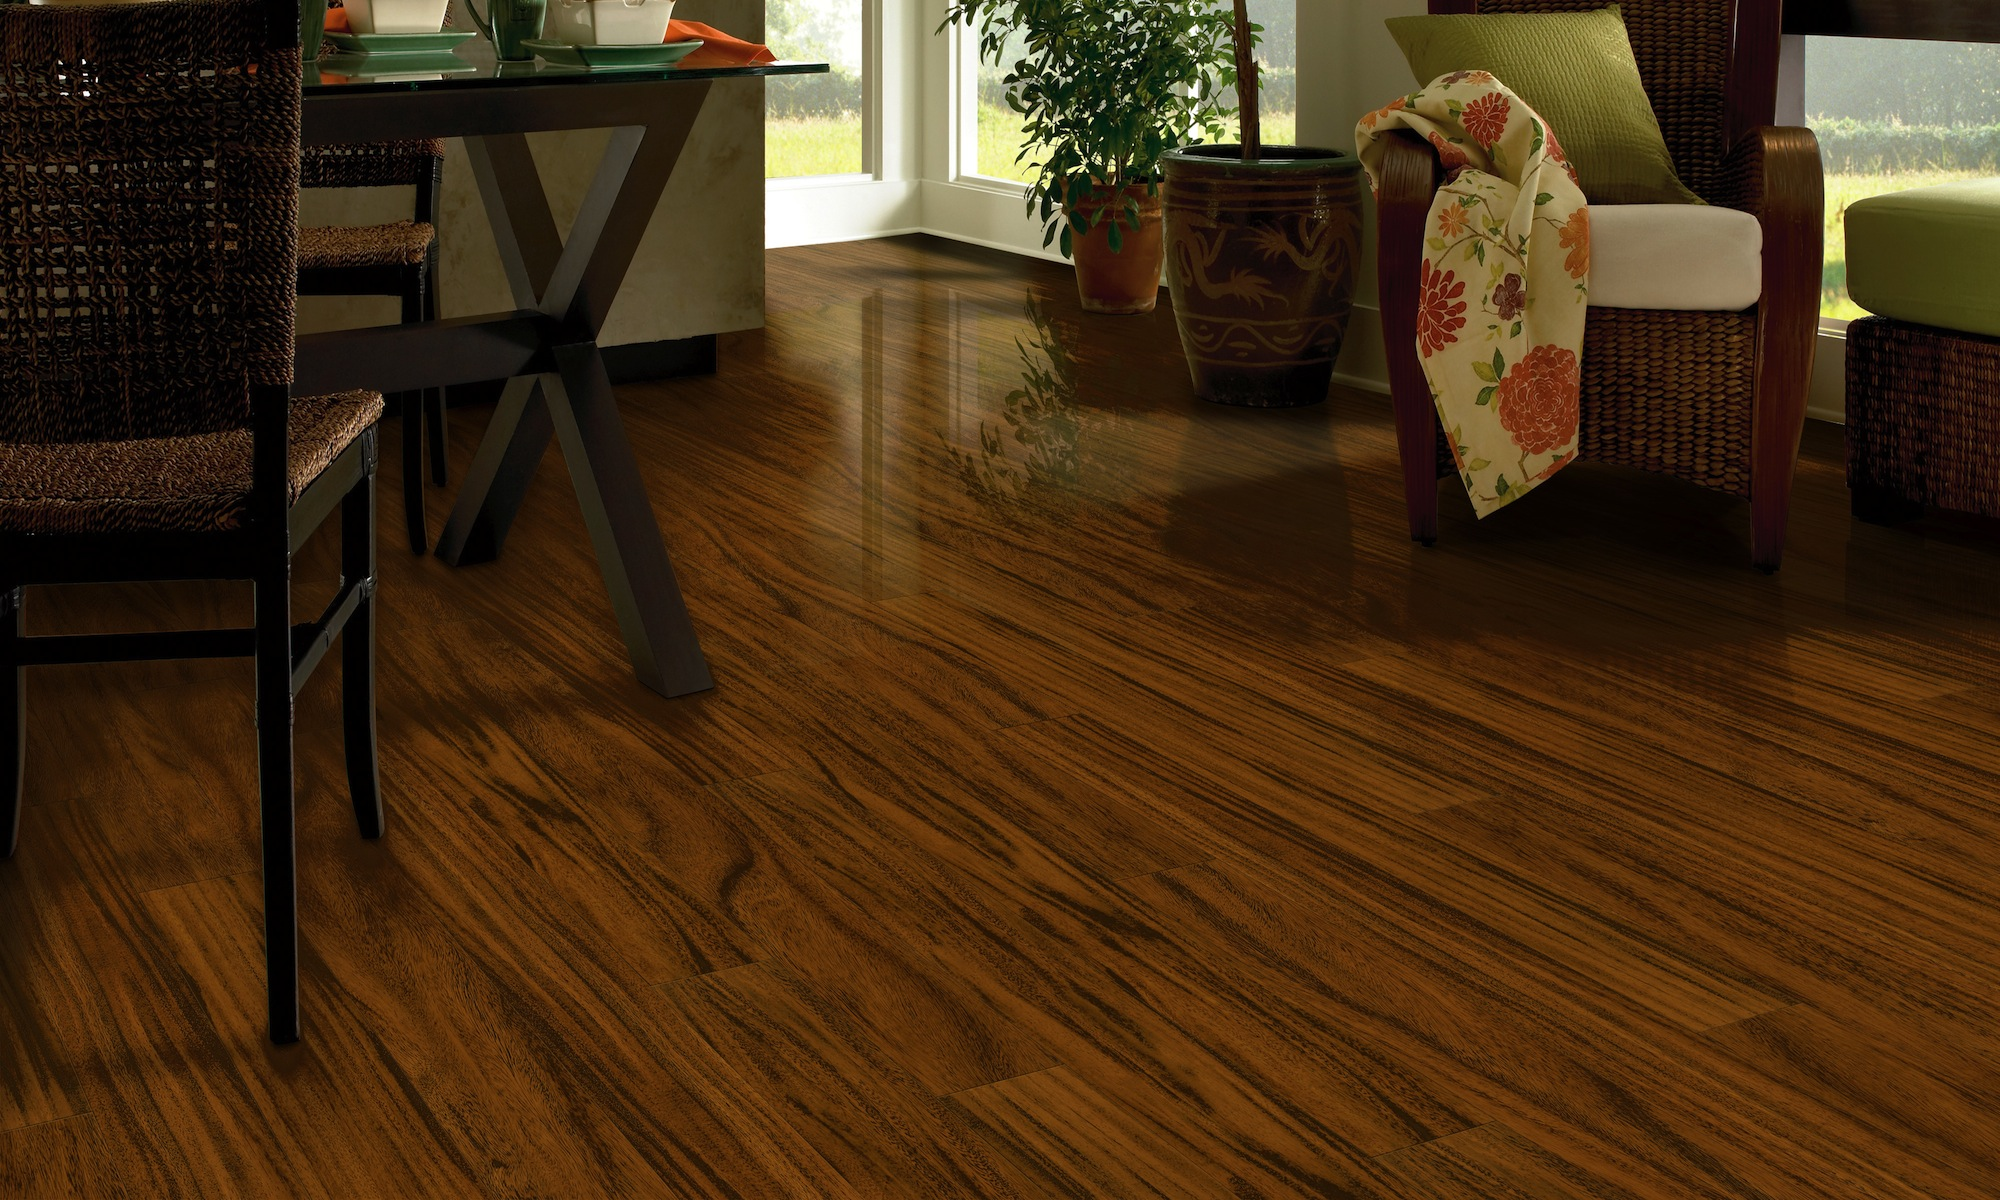 most durable hardwood floors design in living space idea with dining